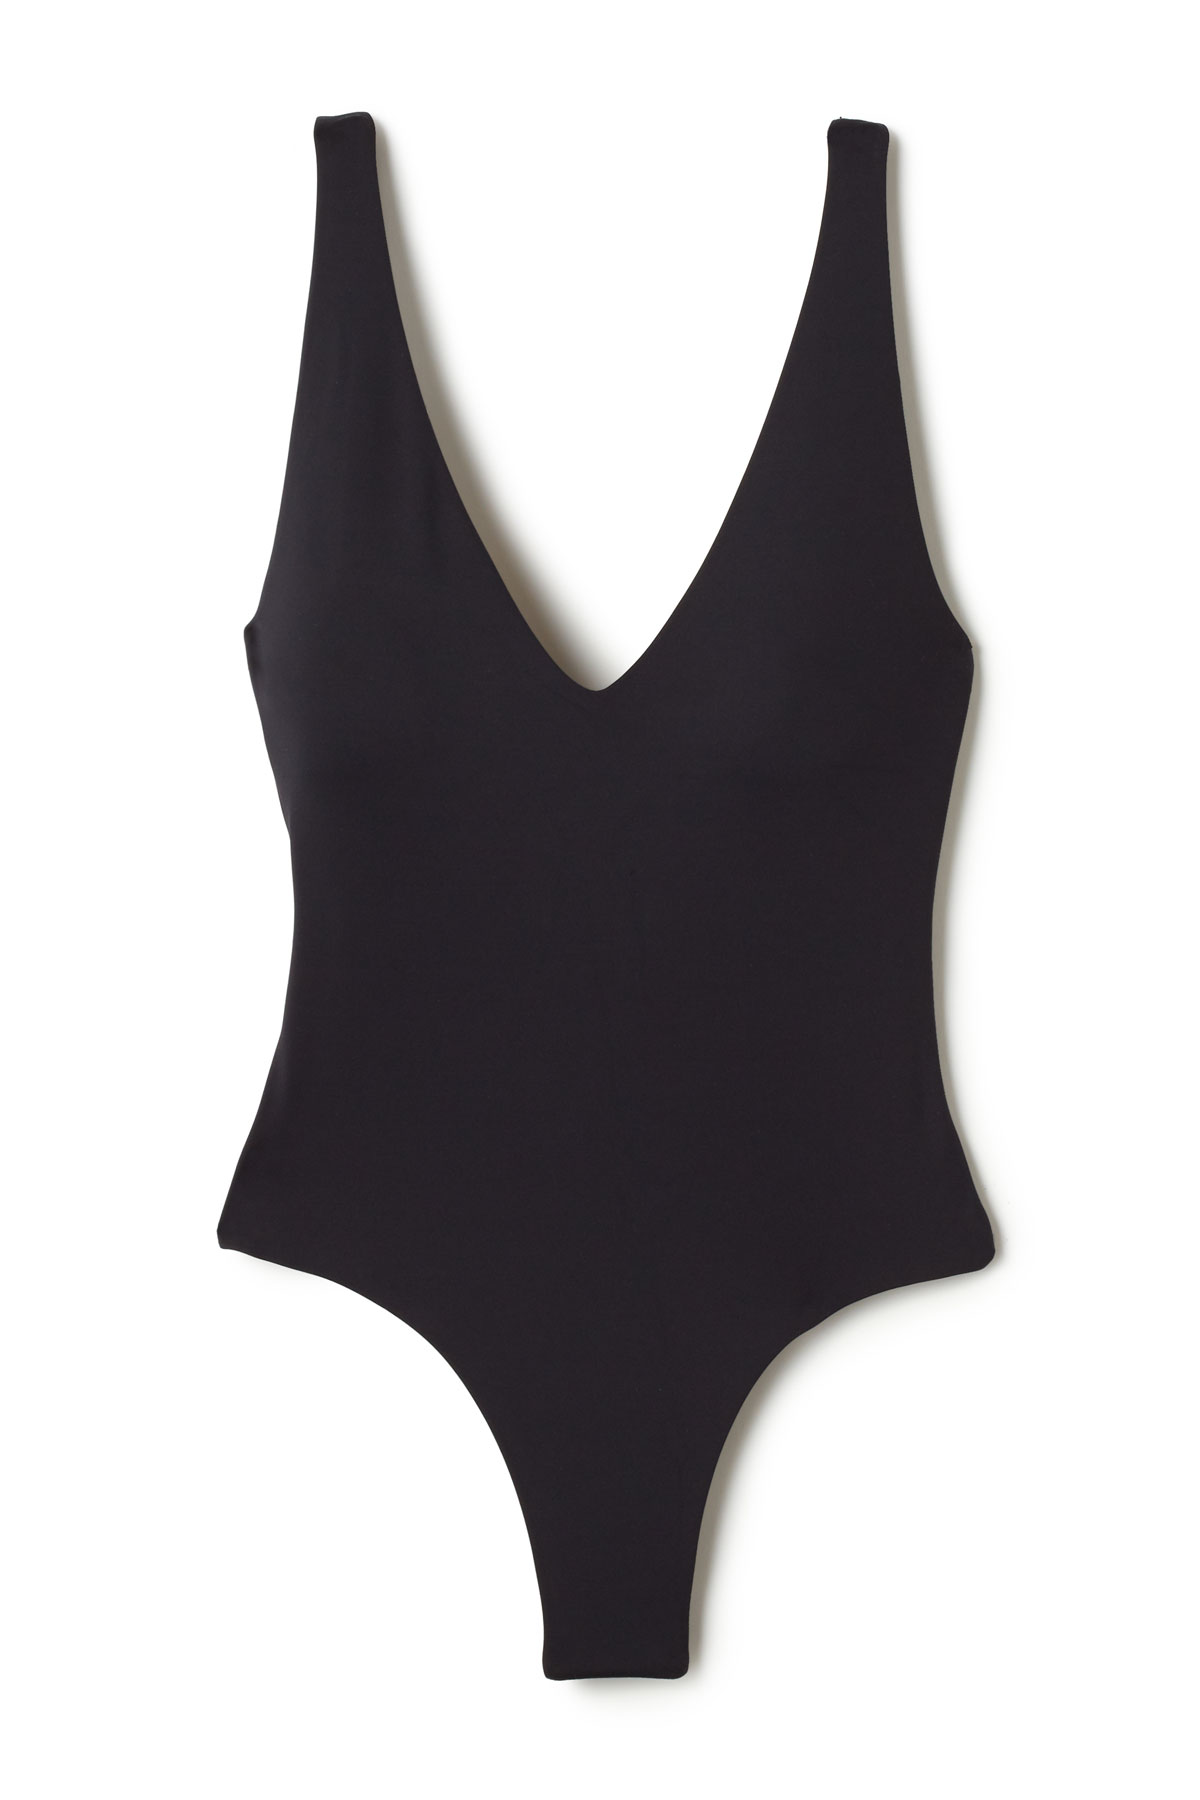 Plunge Over The Shoulder One Piece Swimsuit - Black 3